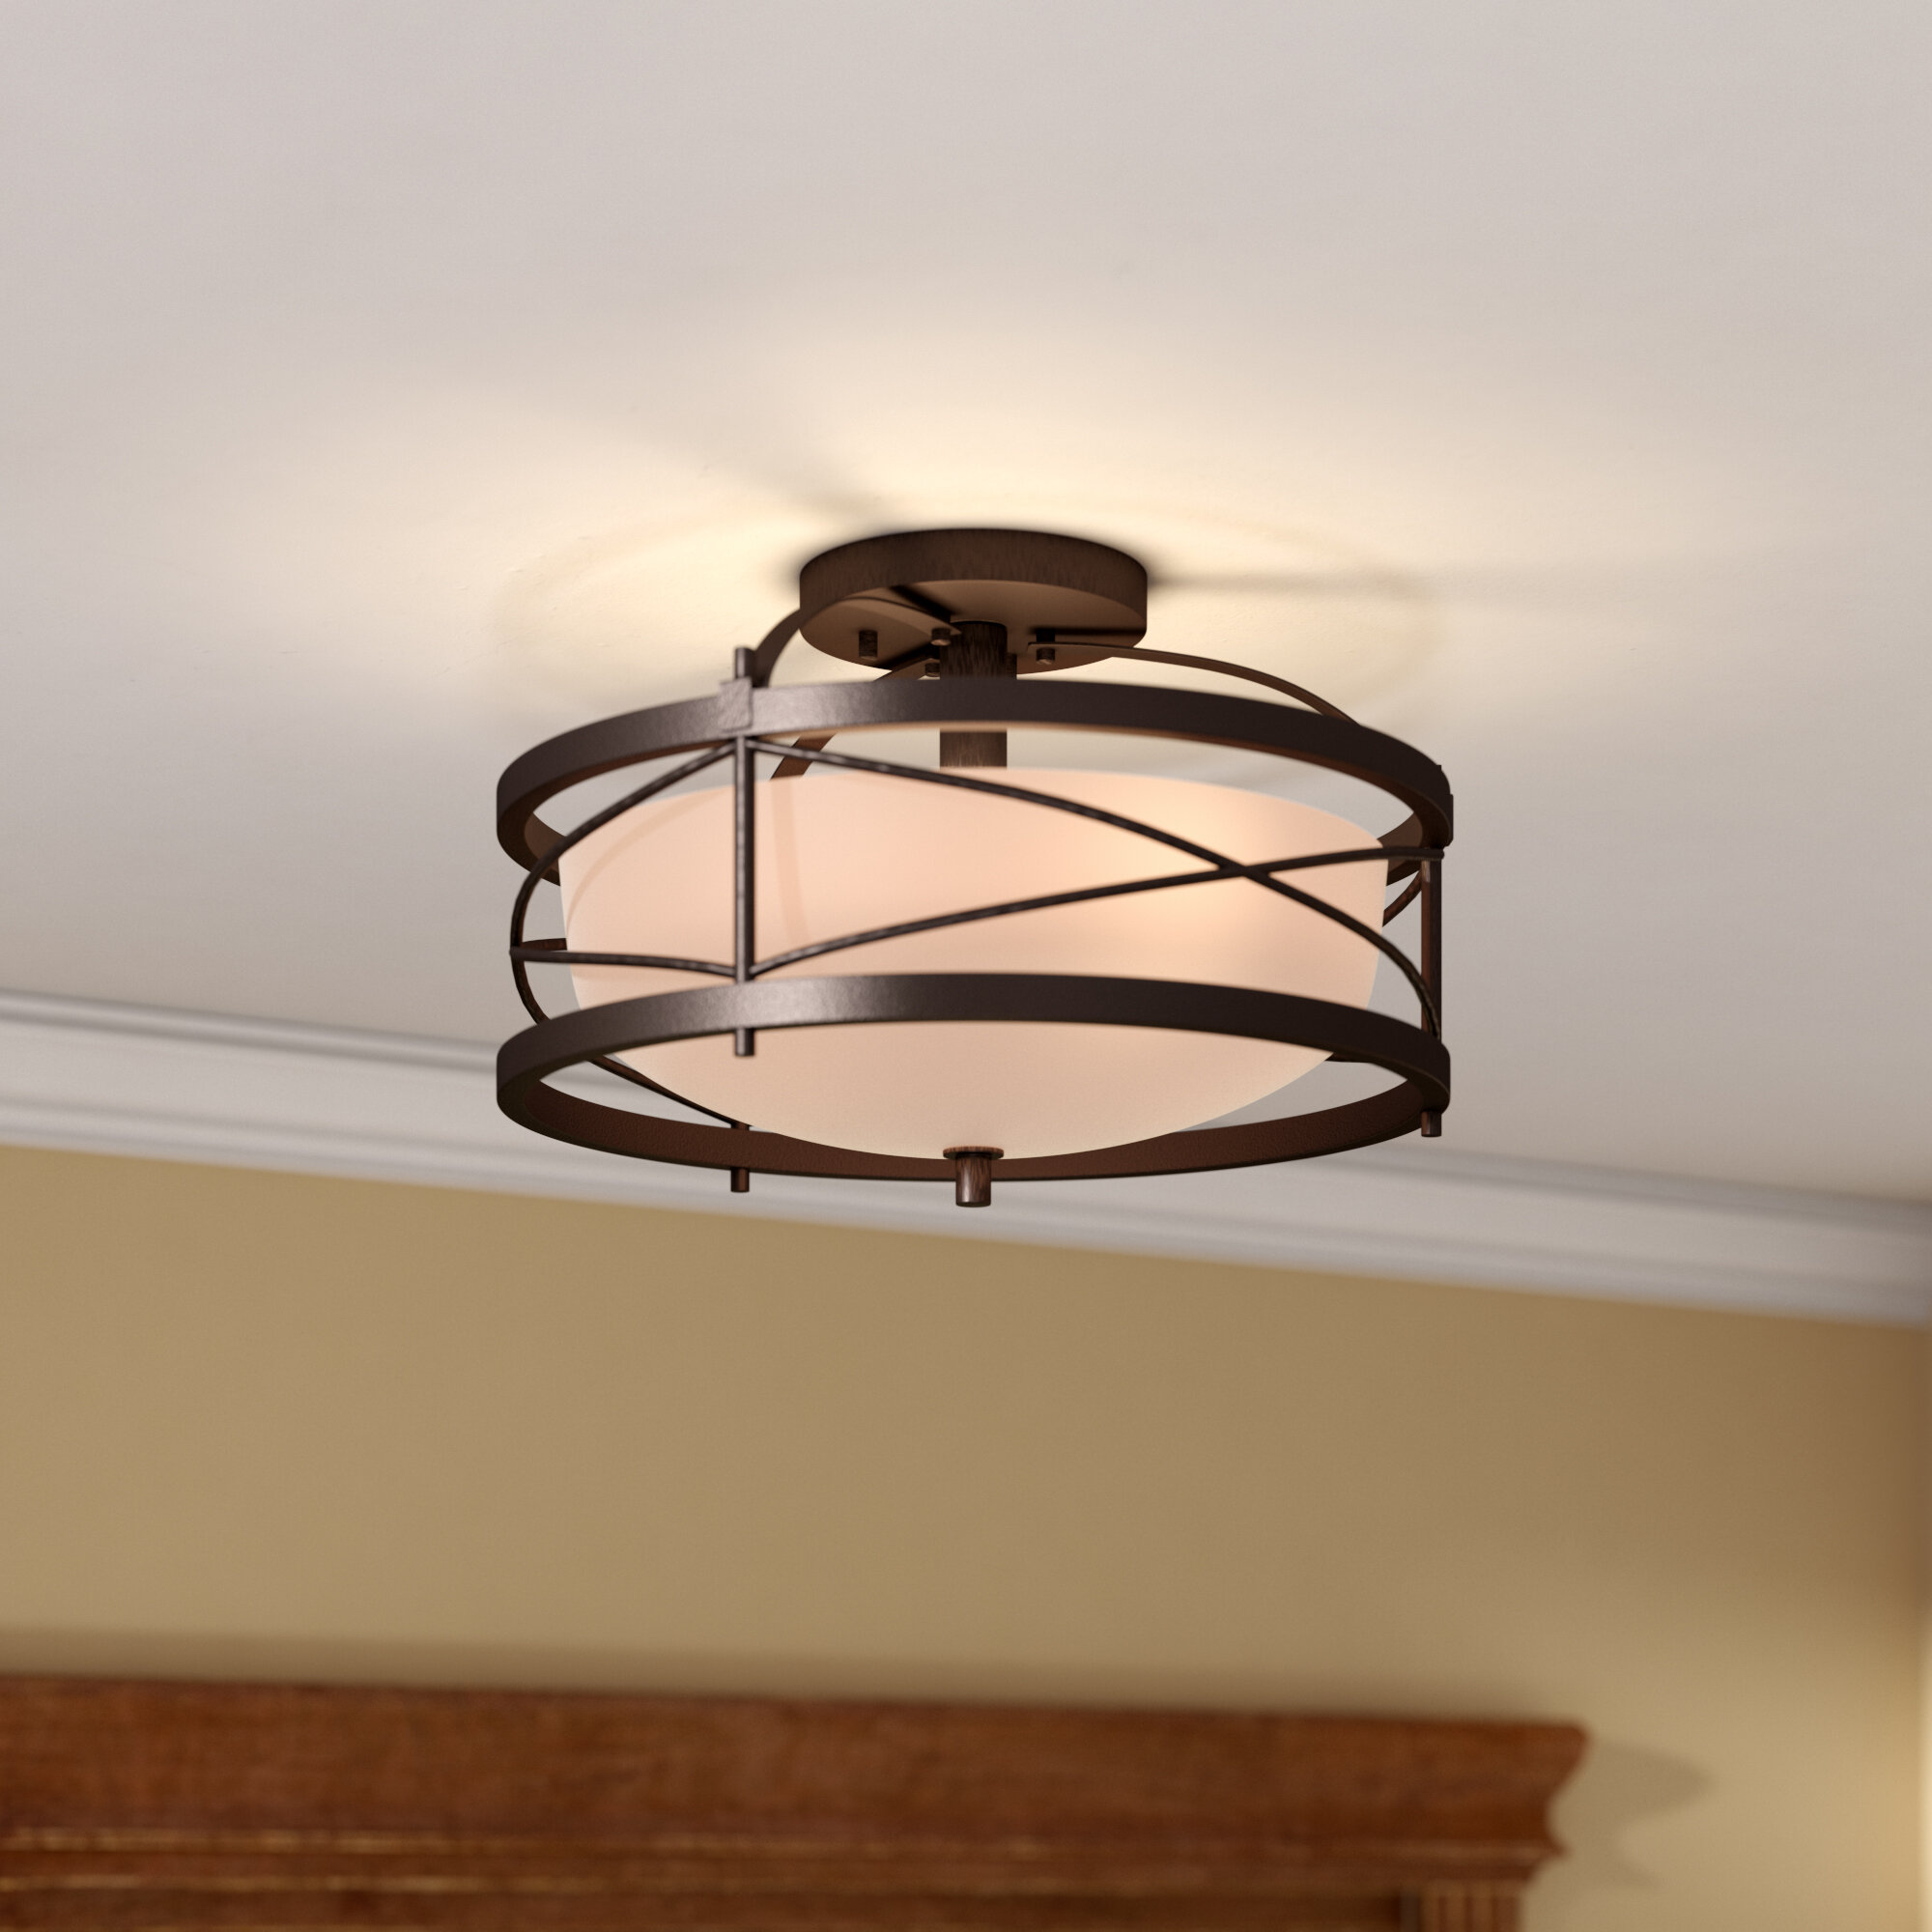 fixtures virginia collection ceiling life stylish flush mount on street ceilings image of light